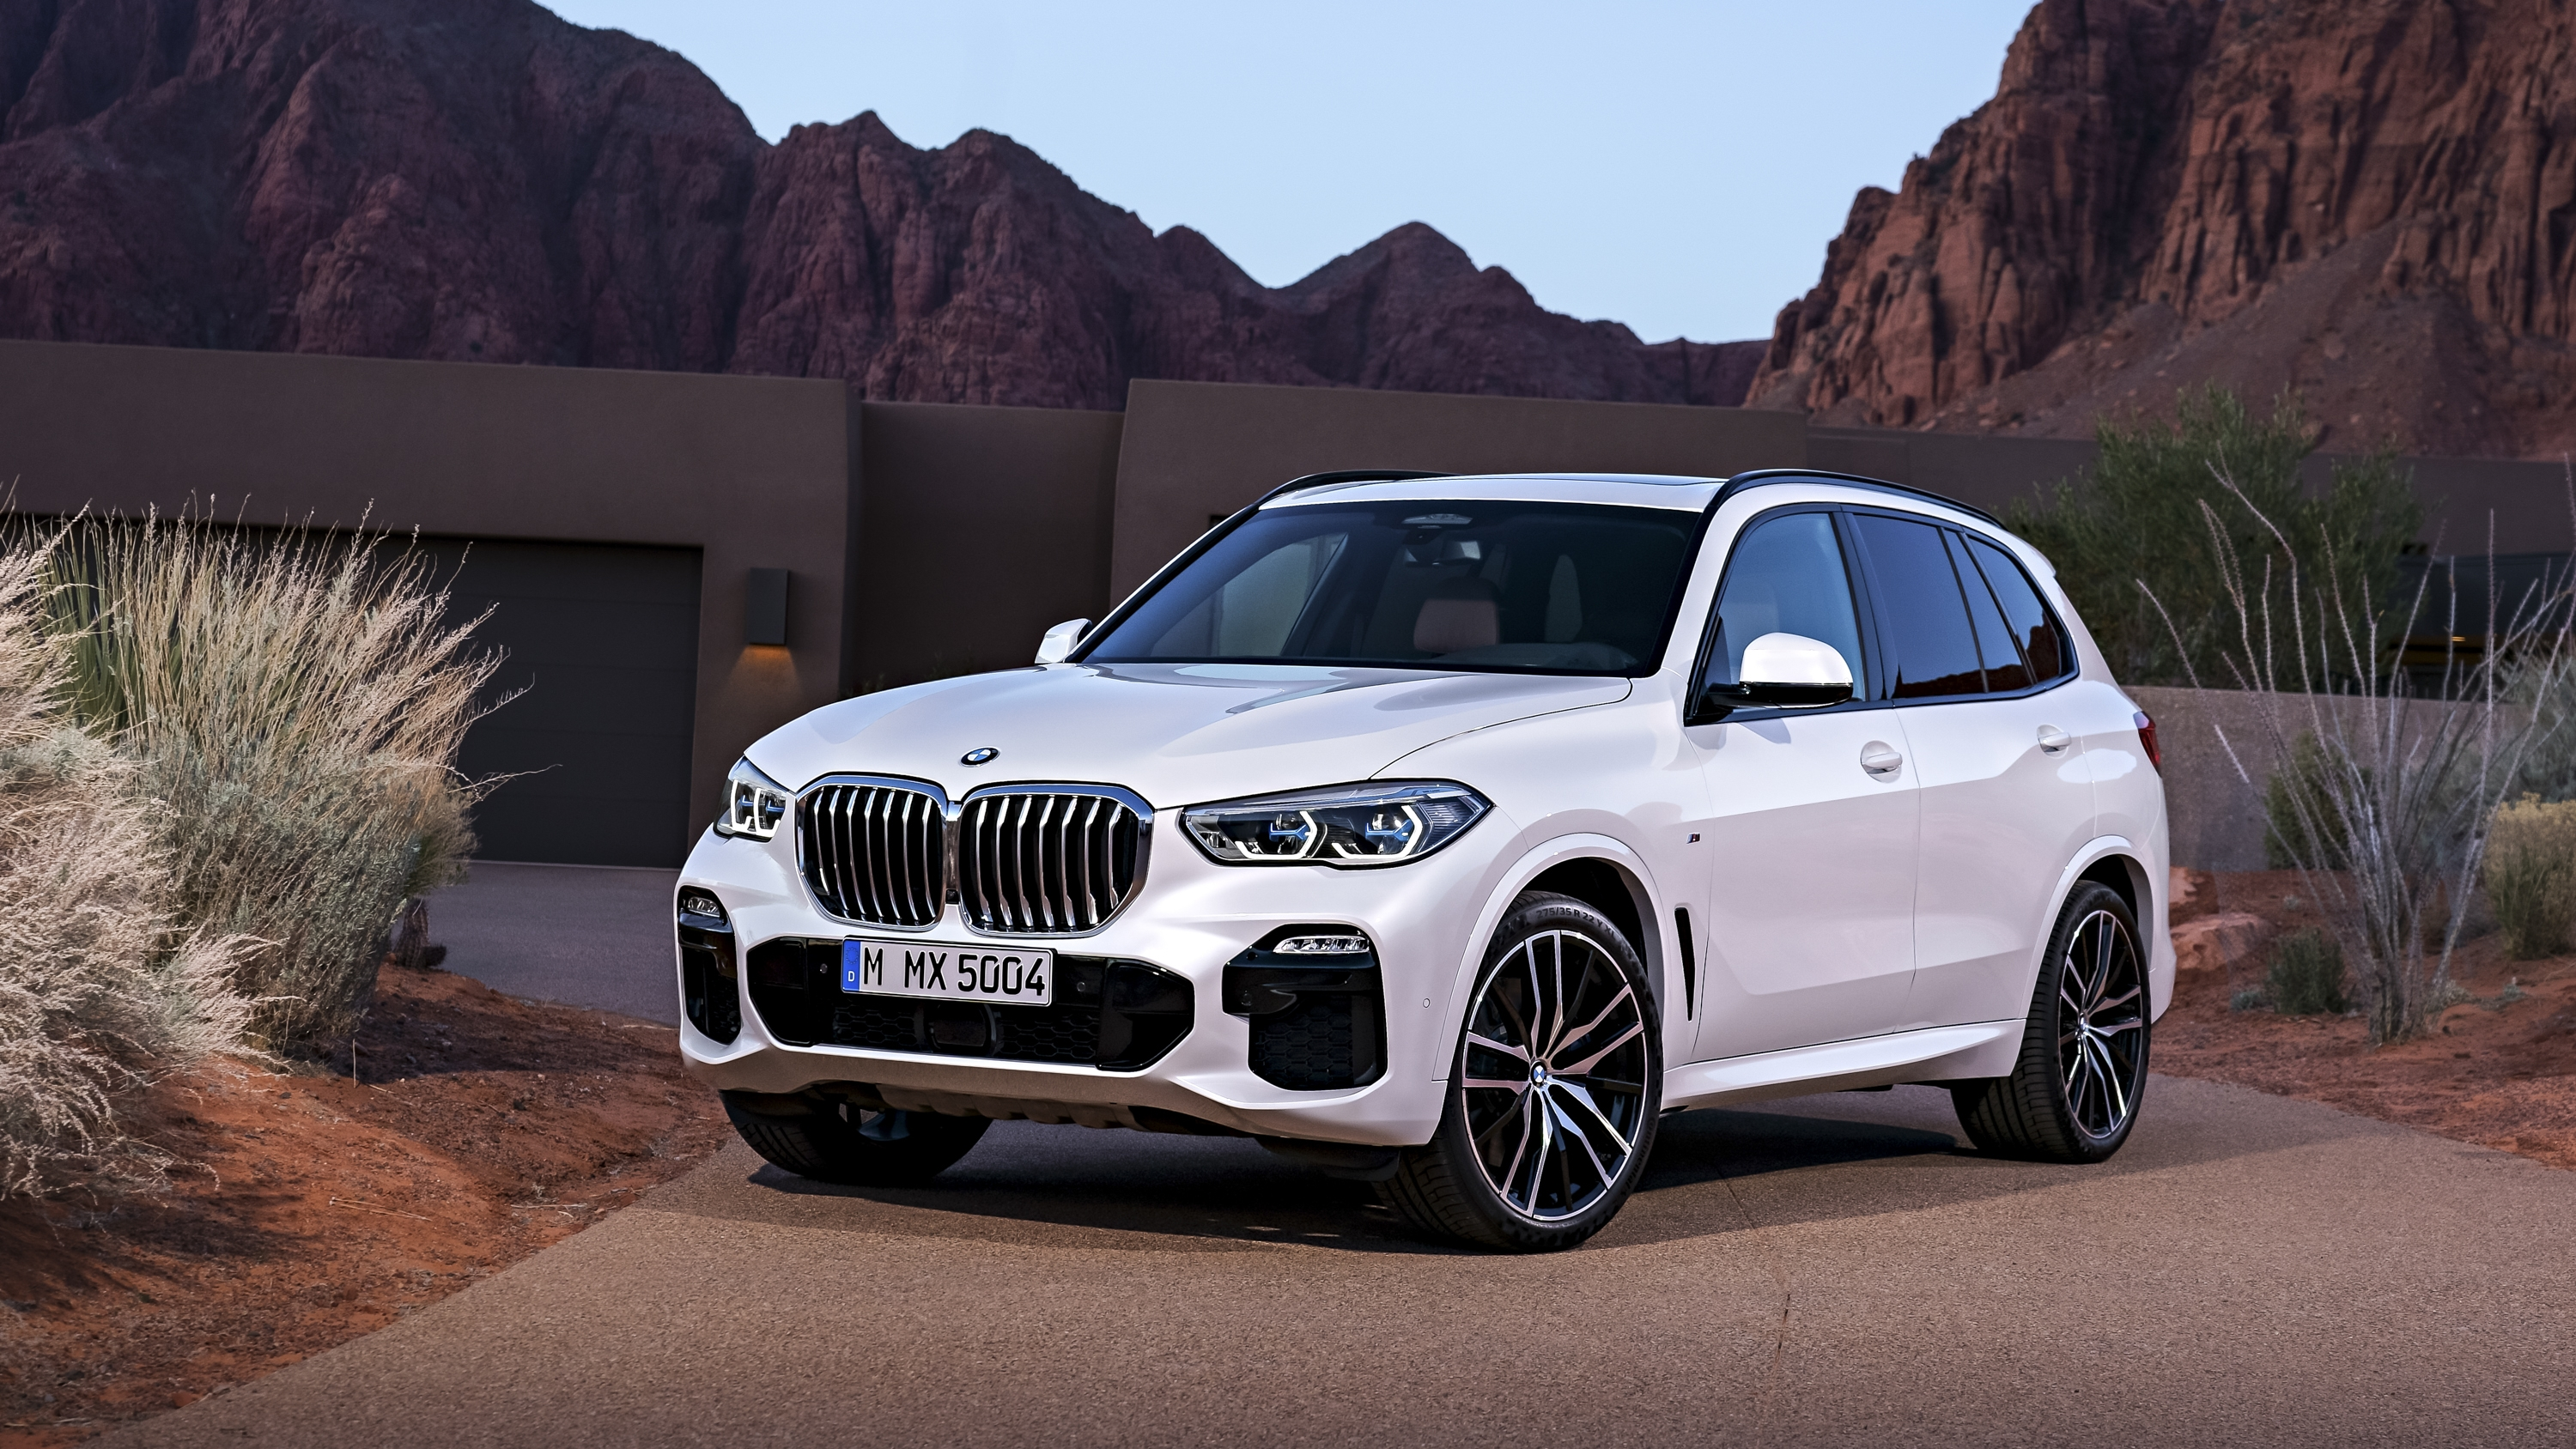 Bmw Screwed Up Big Time With The New X5 Top Speed